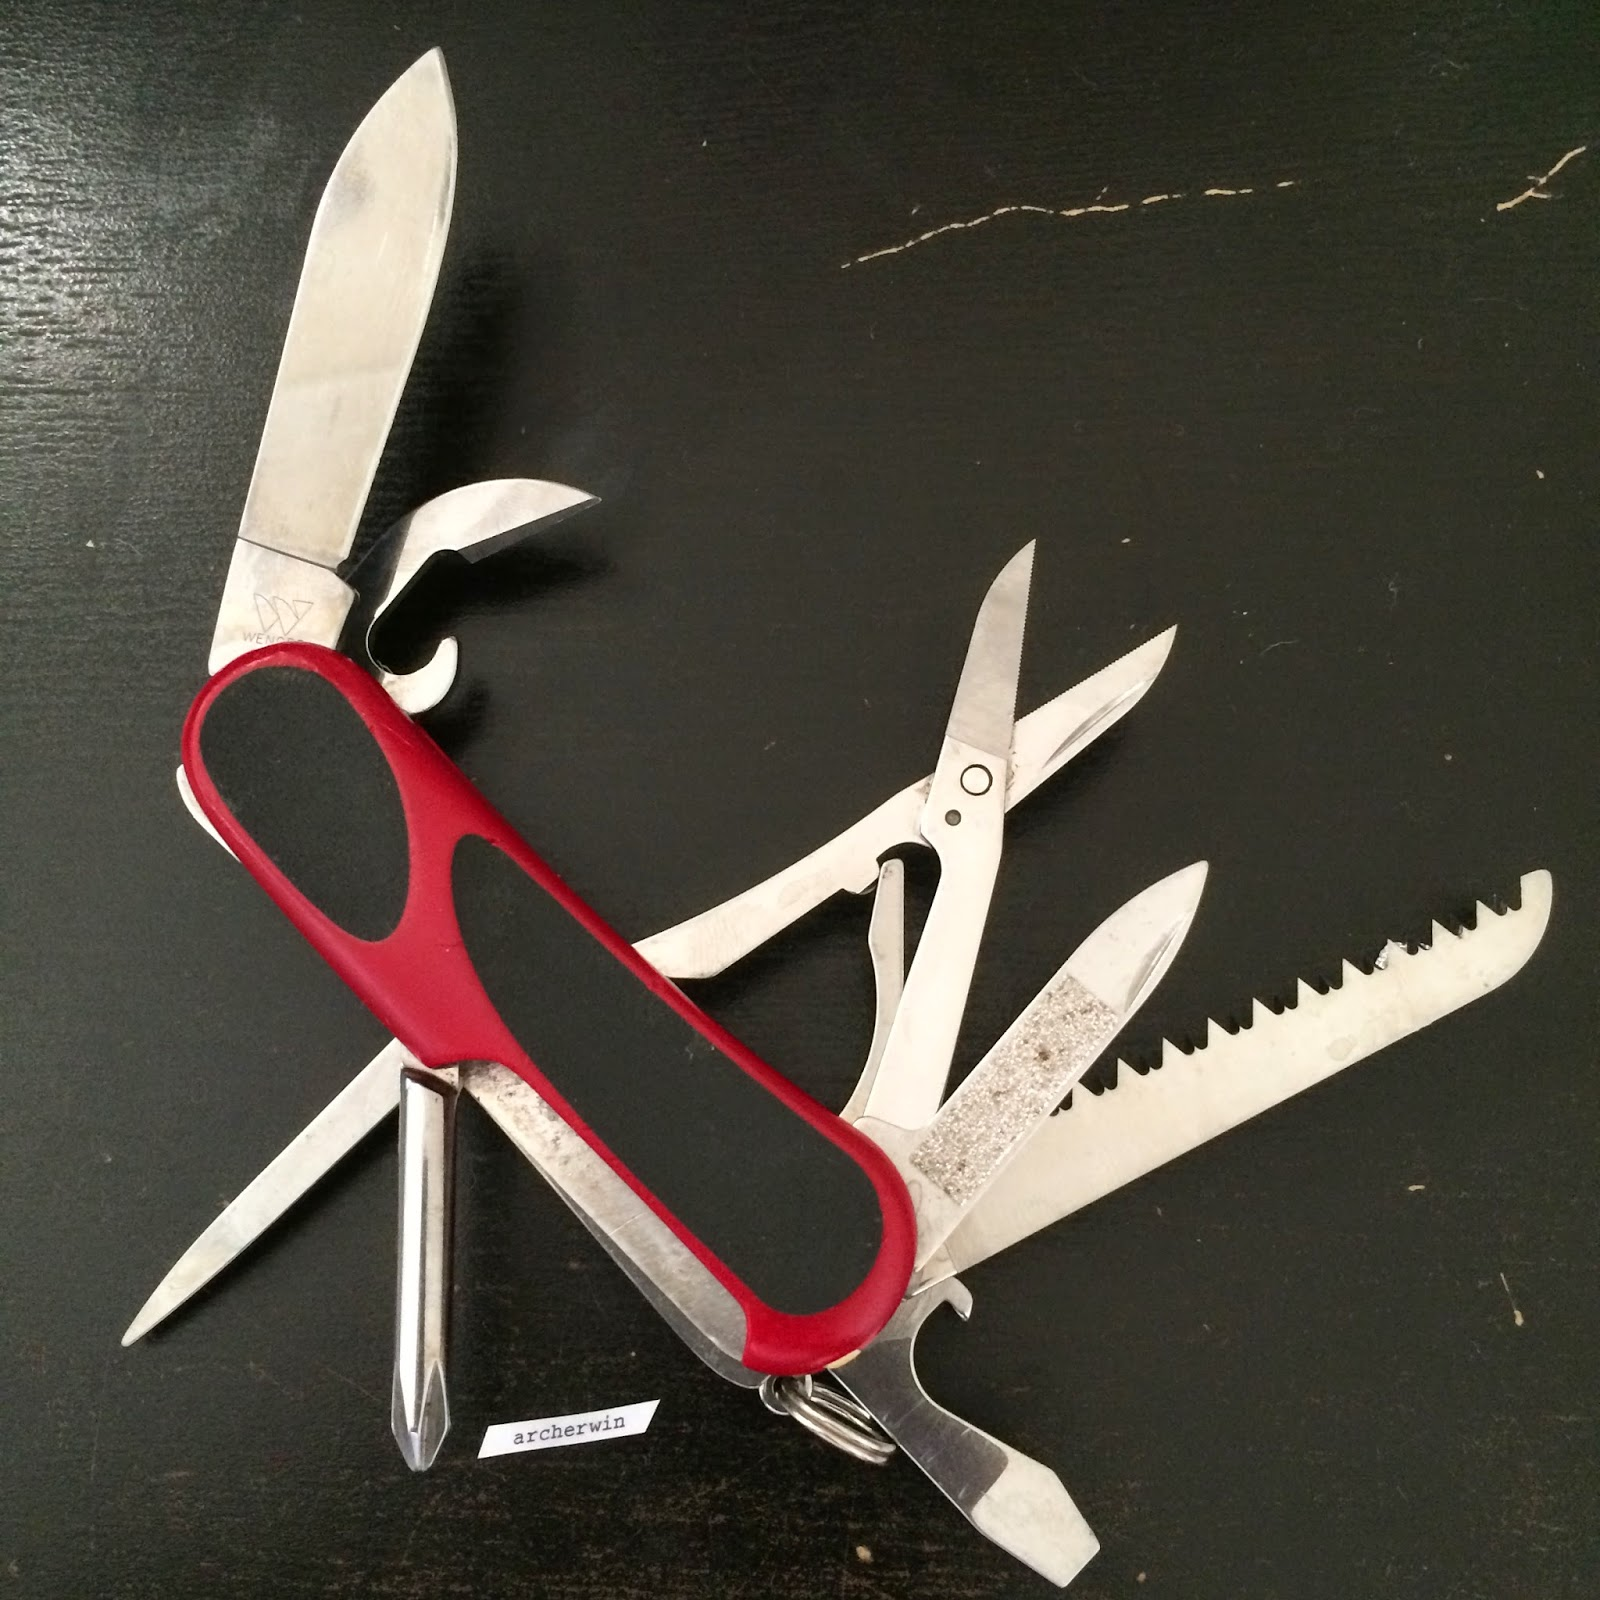 Archerwin S Swiss Army Knives Collection Wenger Evogrip